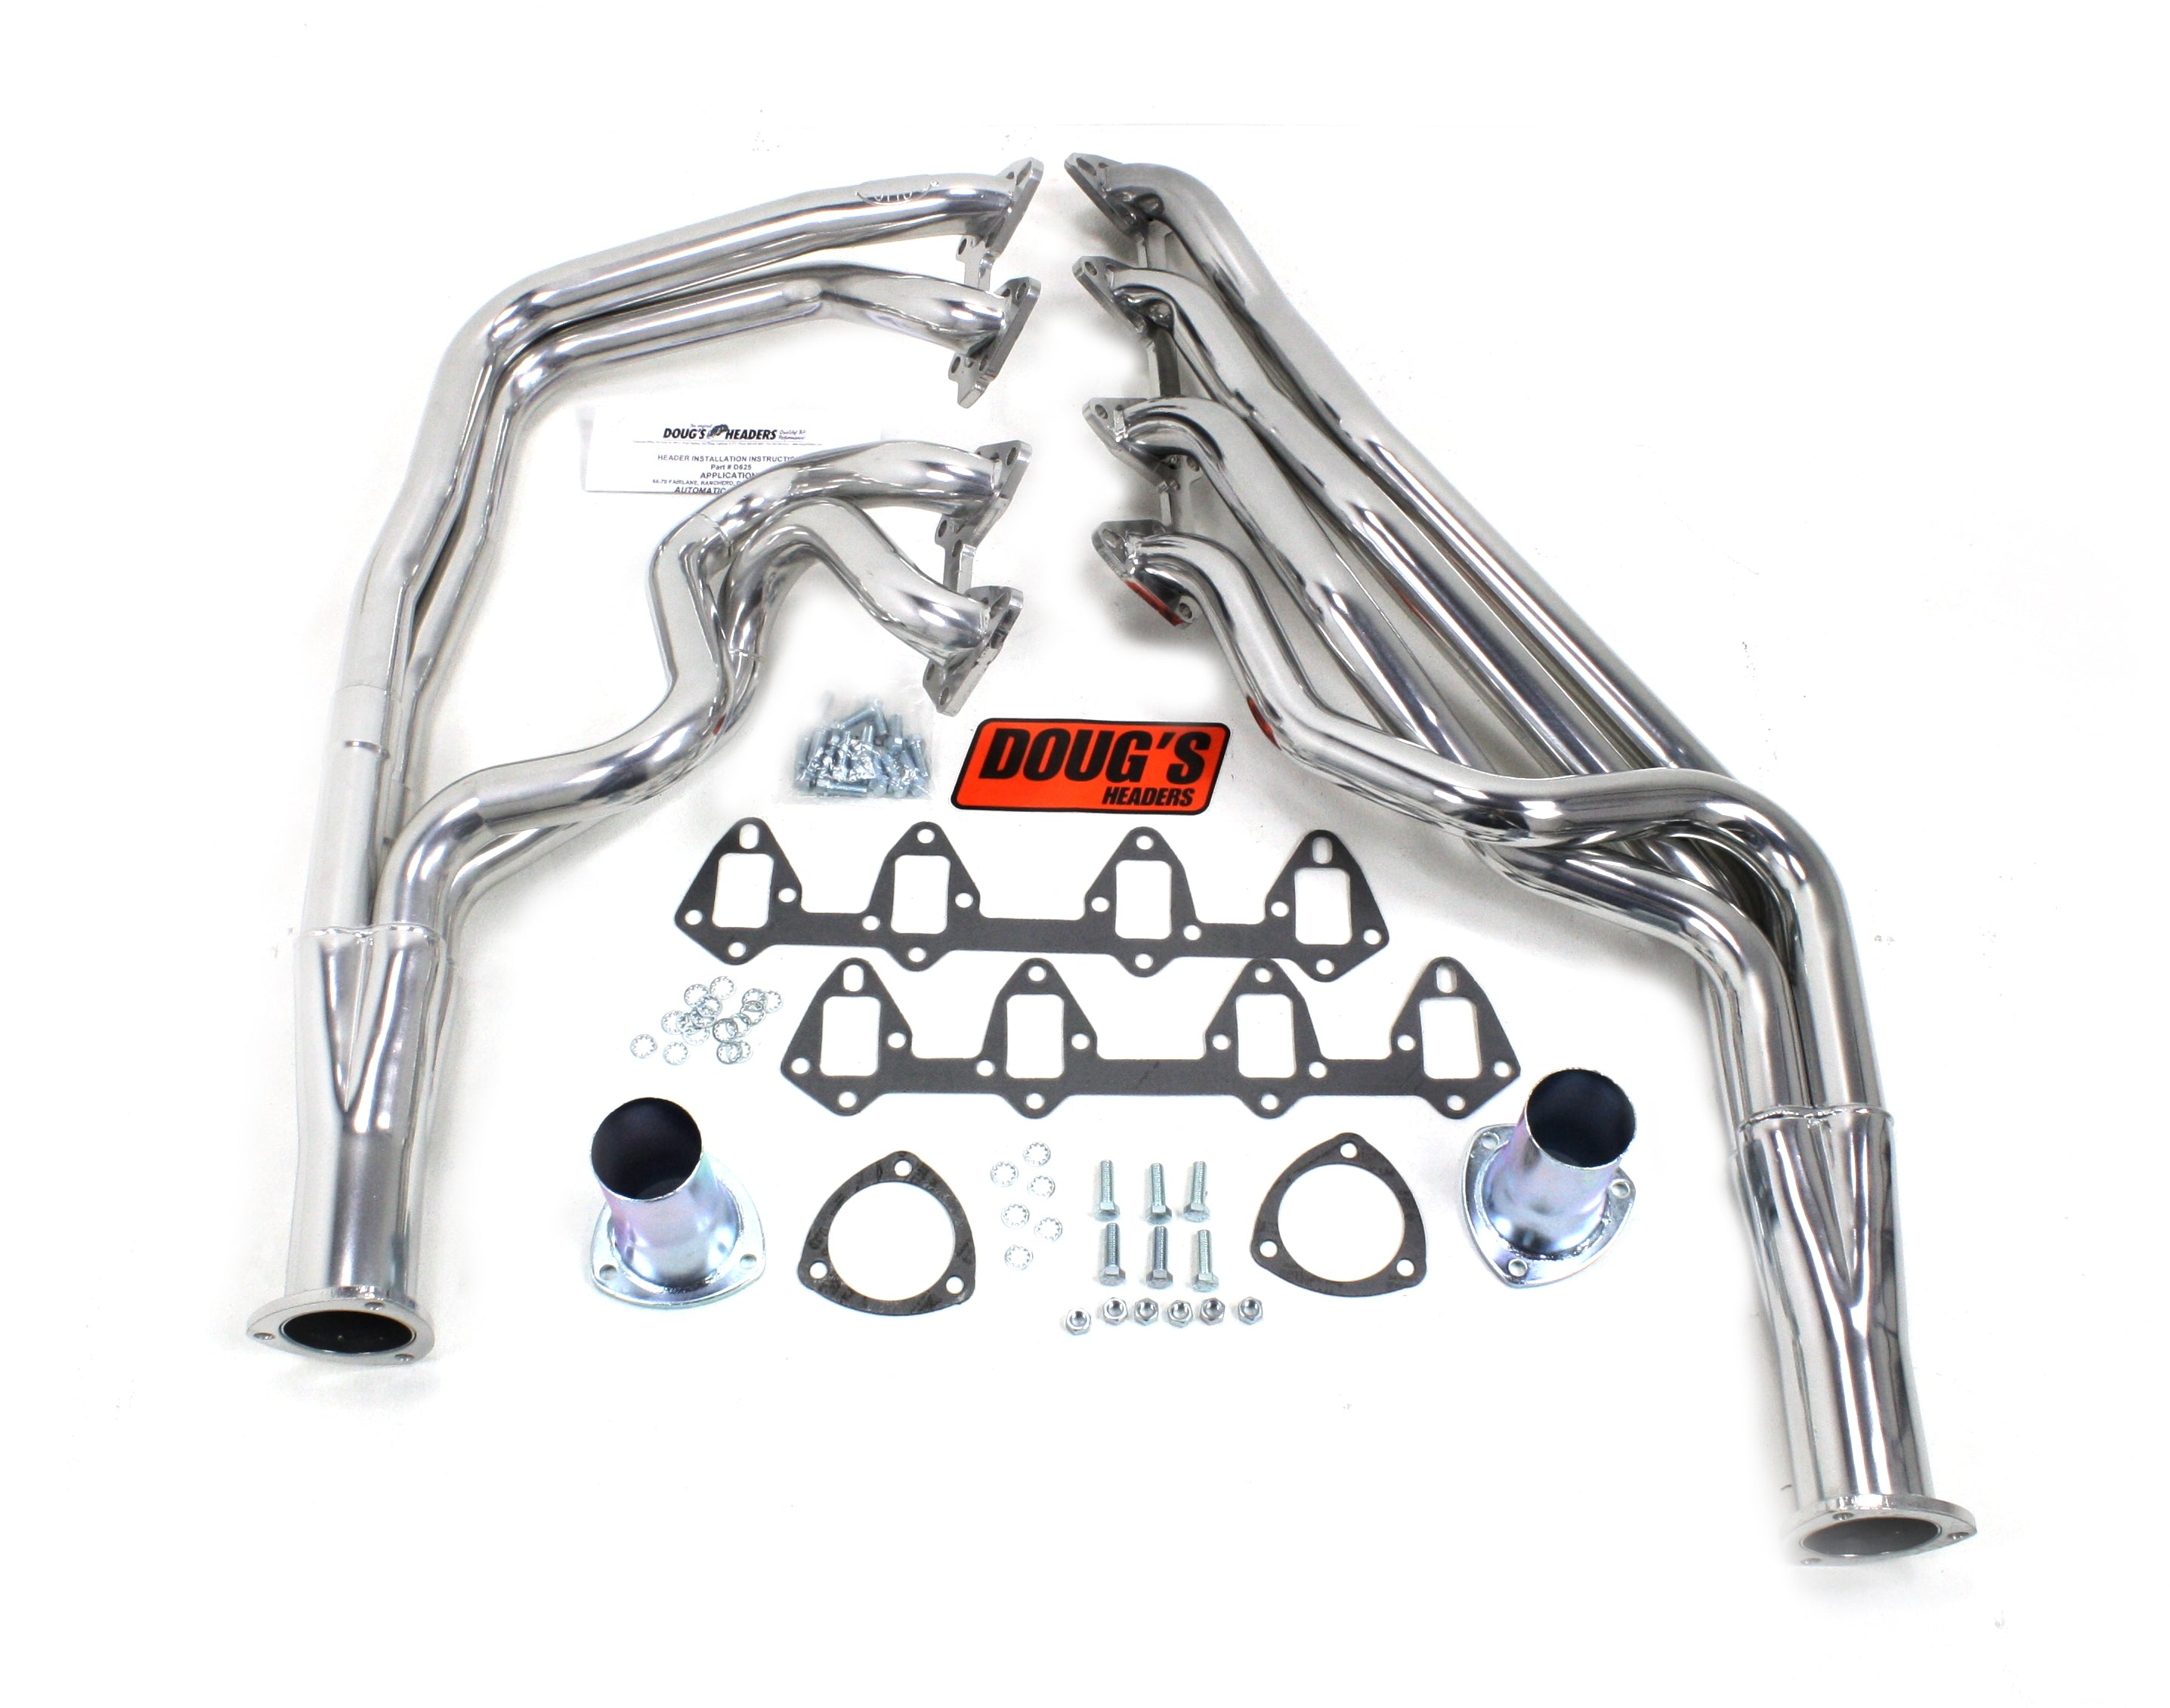 "Doug's Headers D625S 1 3/4"" 4-Tube Full Length Header Ford Fairlane 66-70 FE 390-428 Manual Only Metallic Ceramic Coating"